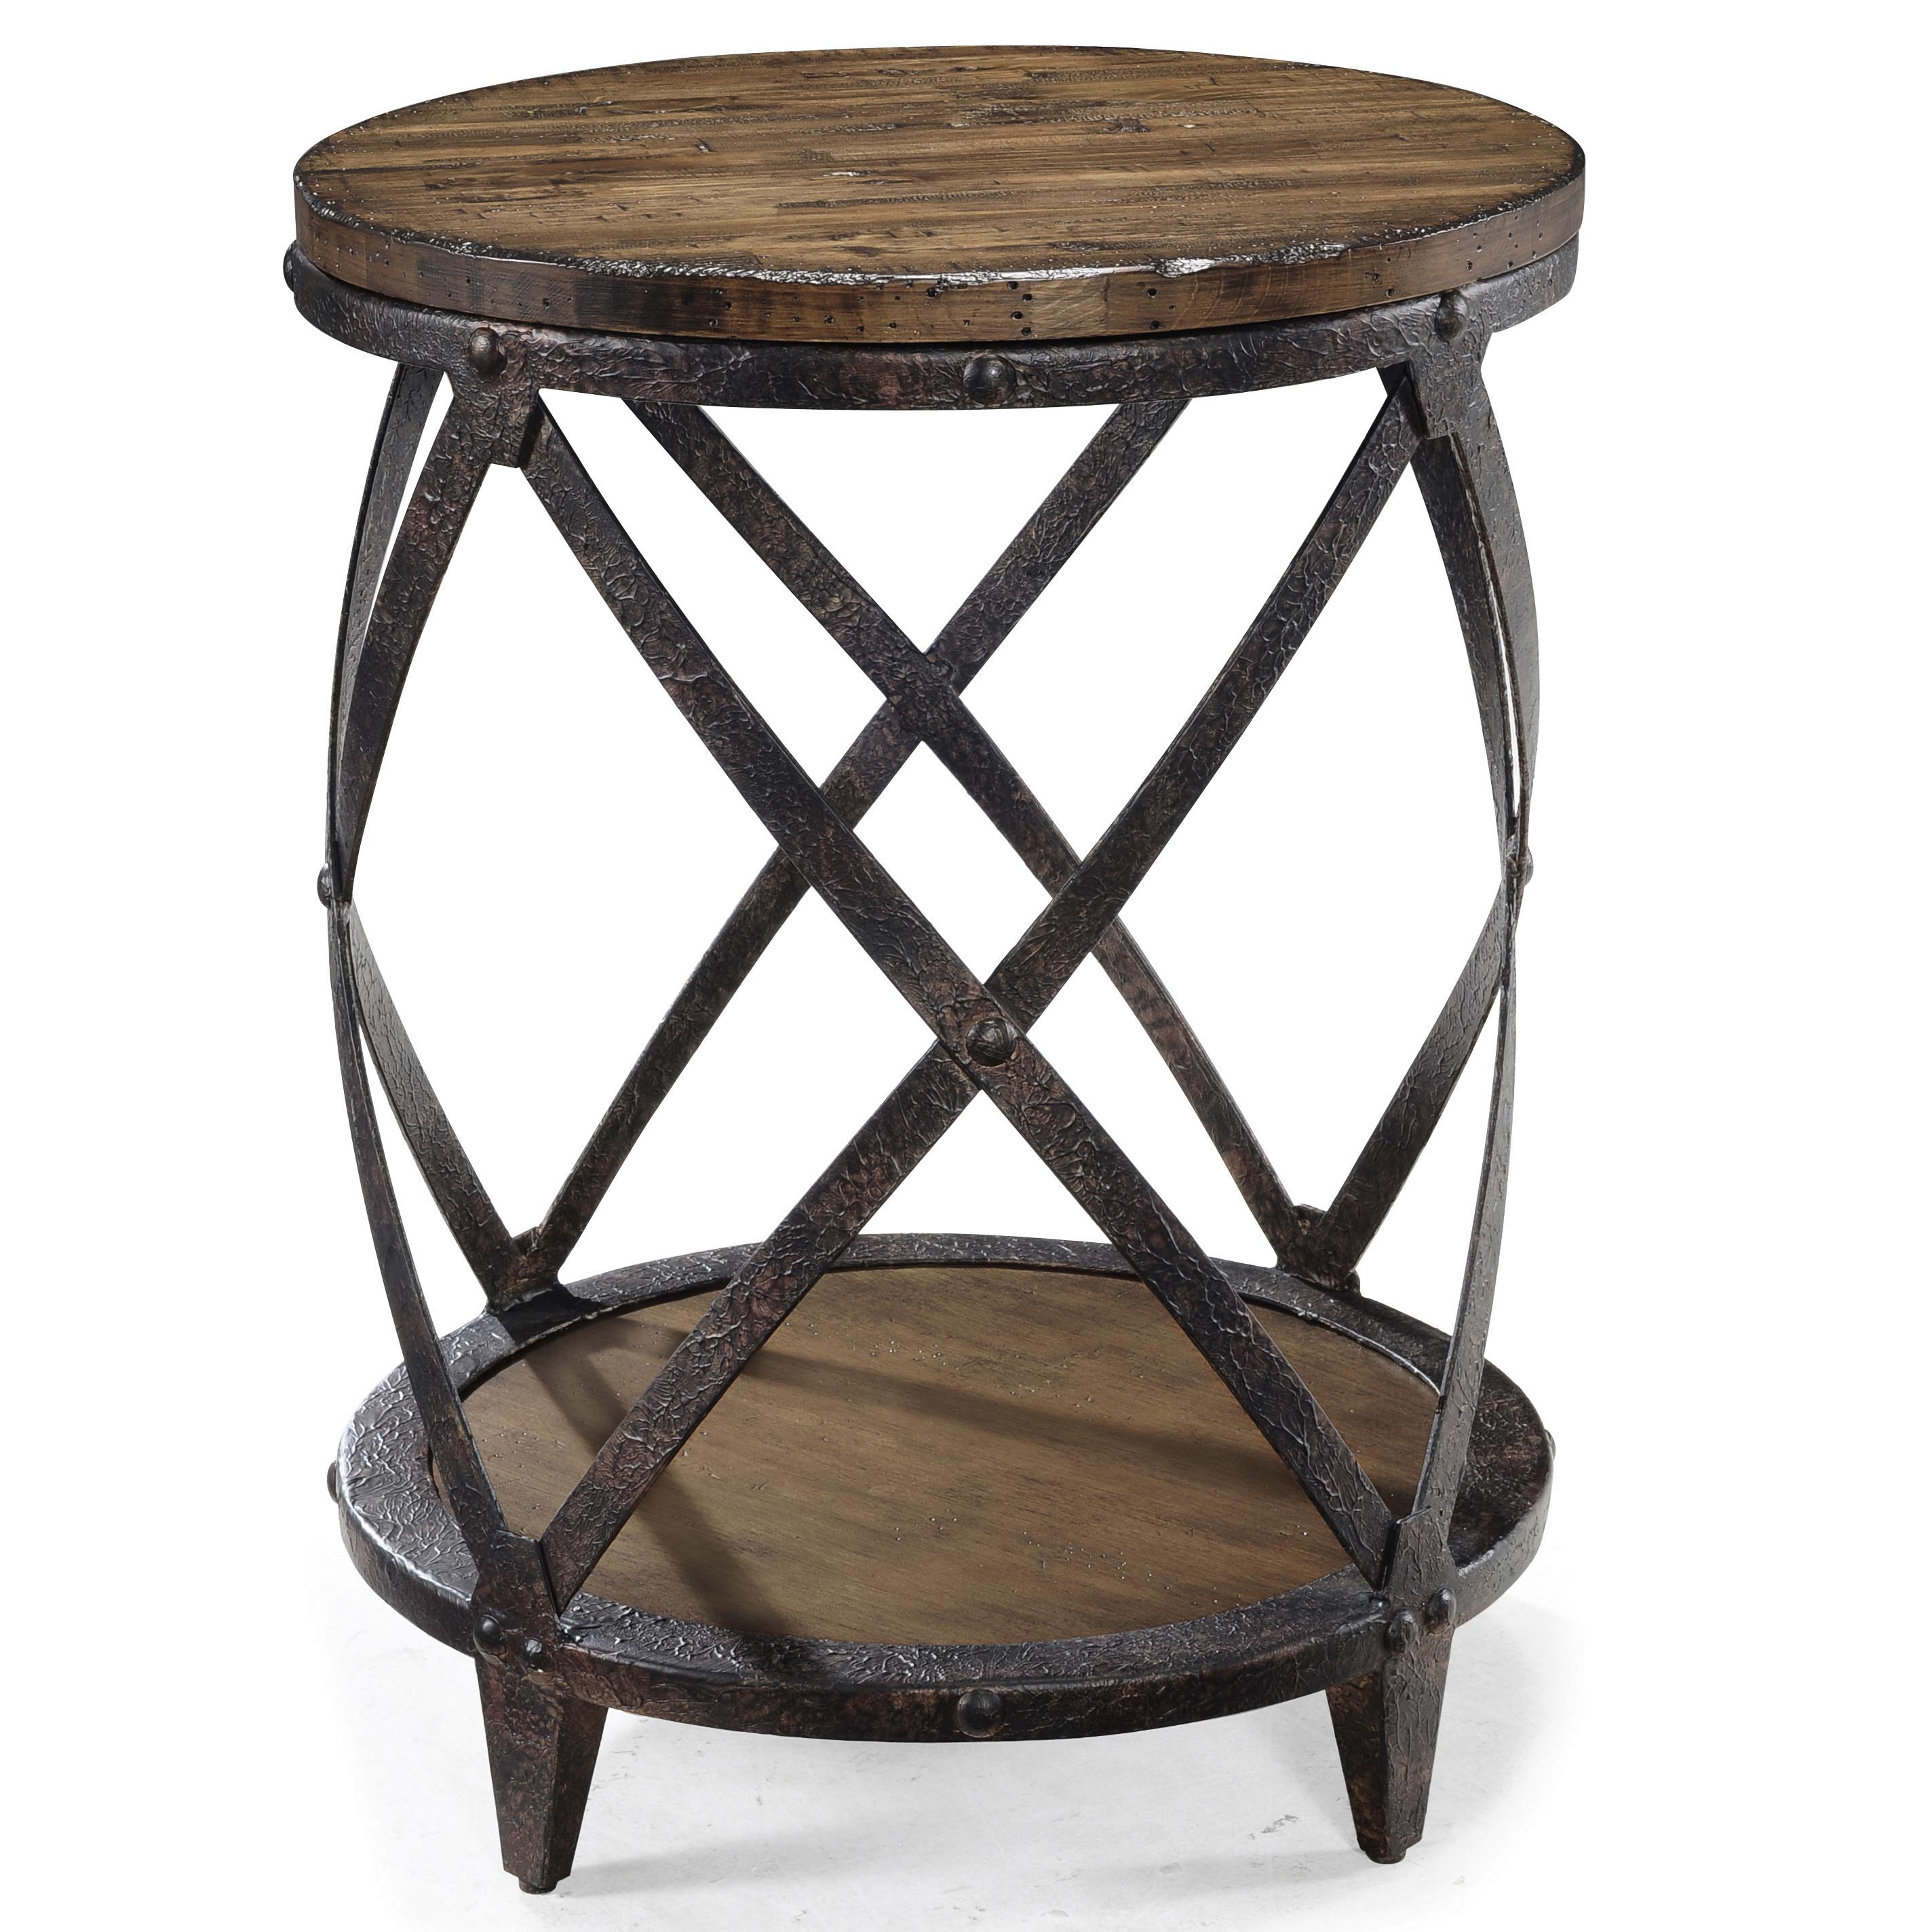 paula accent tall large white wood roundhill table grey black wooden exciting antique home side furniture rene pedestal distressed deen diy round small full size british designers